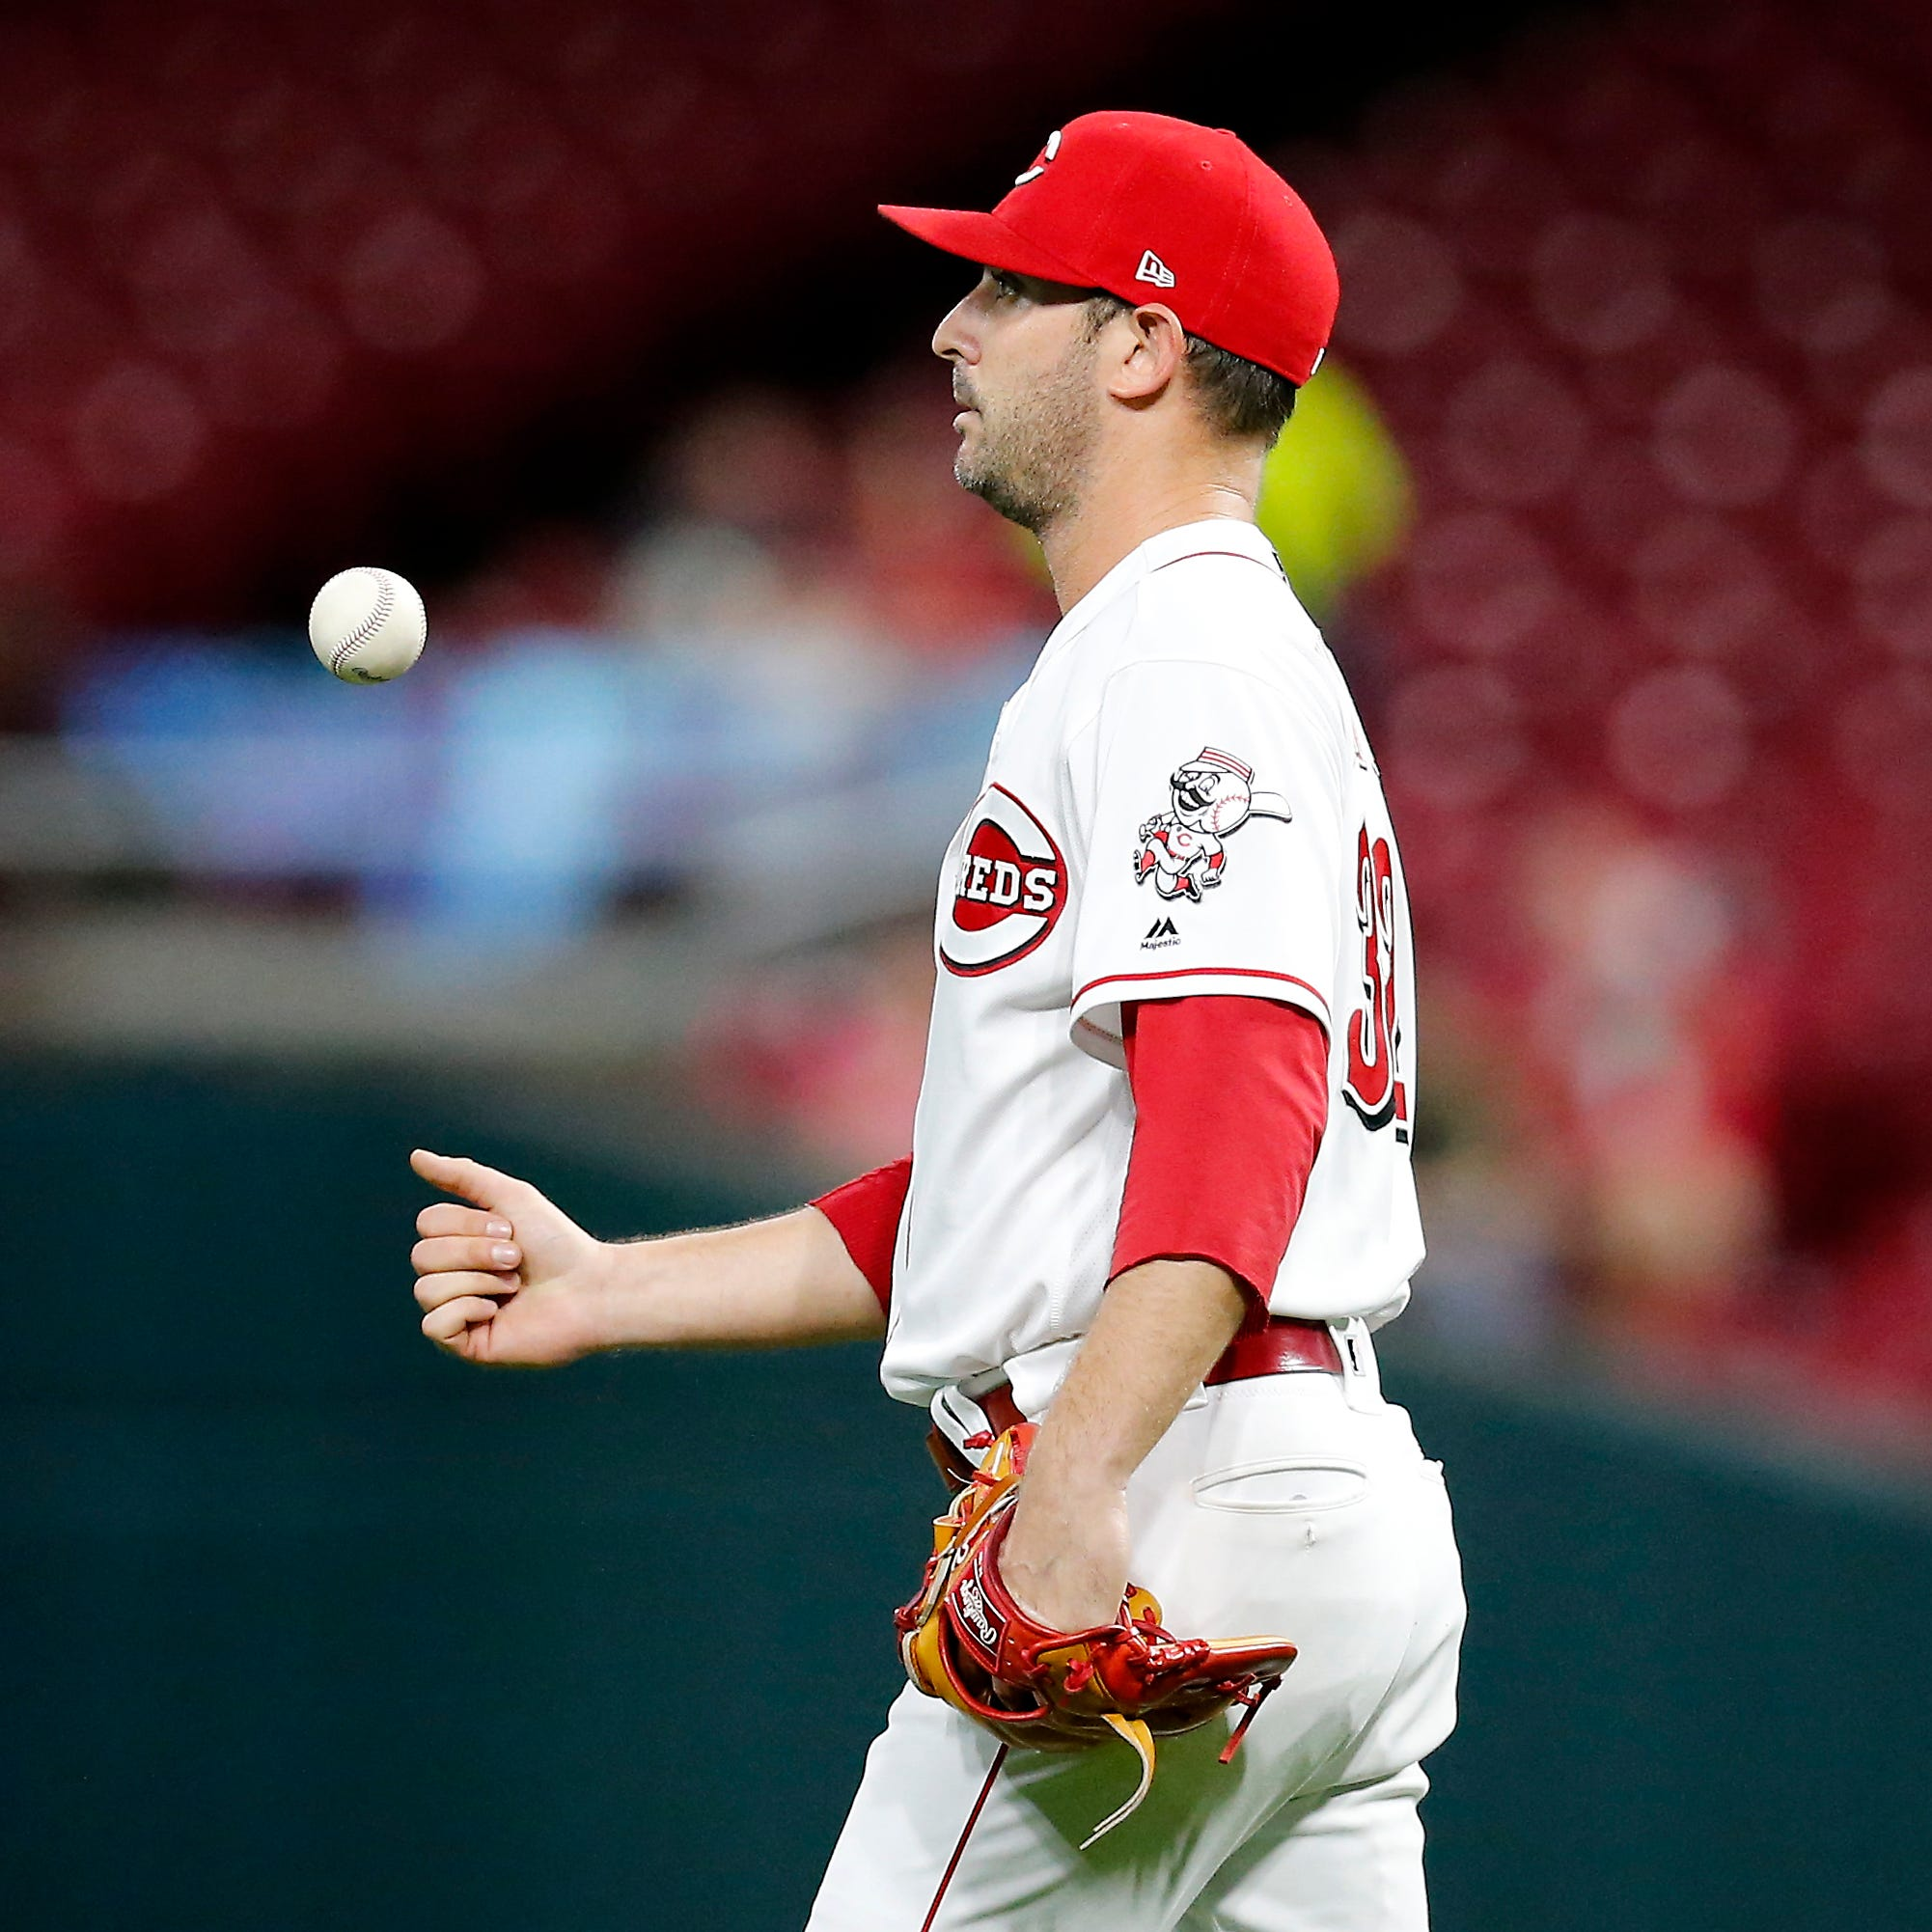 Cincinnati Reds falls to Kansas City Royals; Matt Harvey OK in his final start of the season, 'absolutely' open to returning